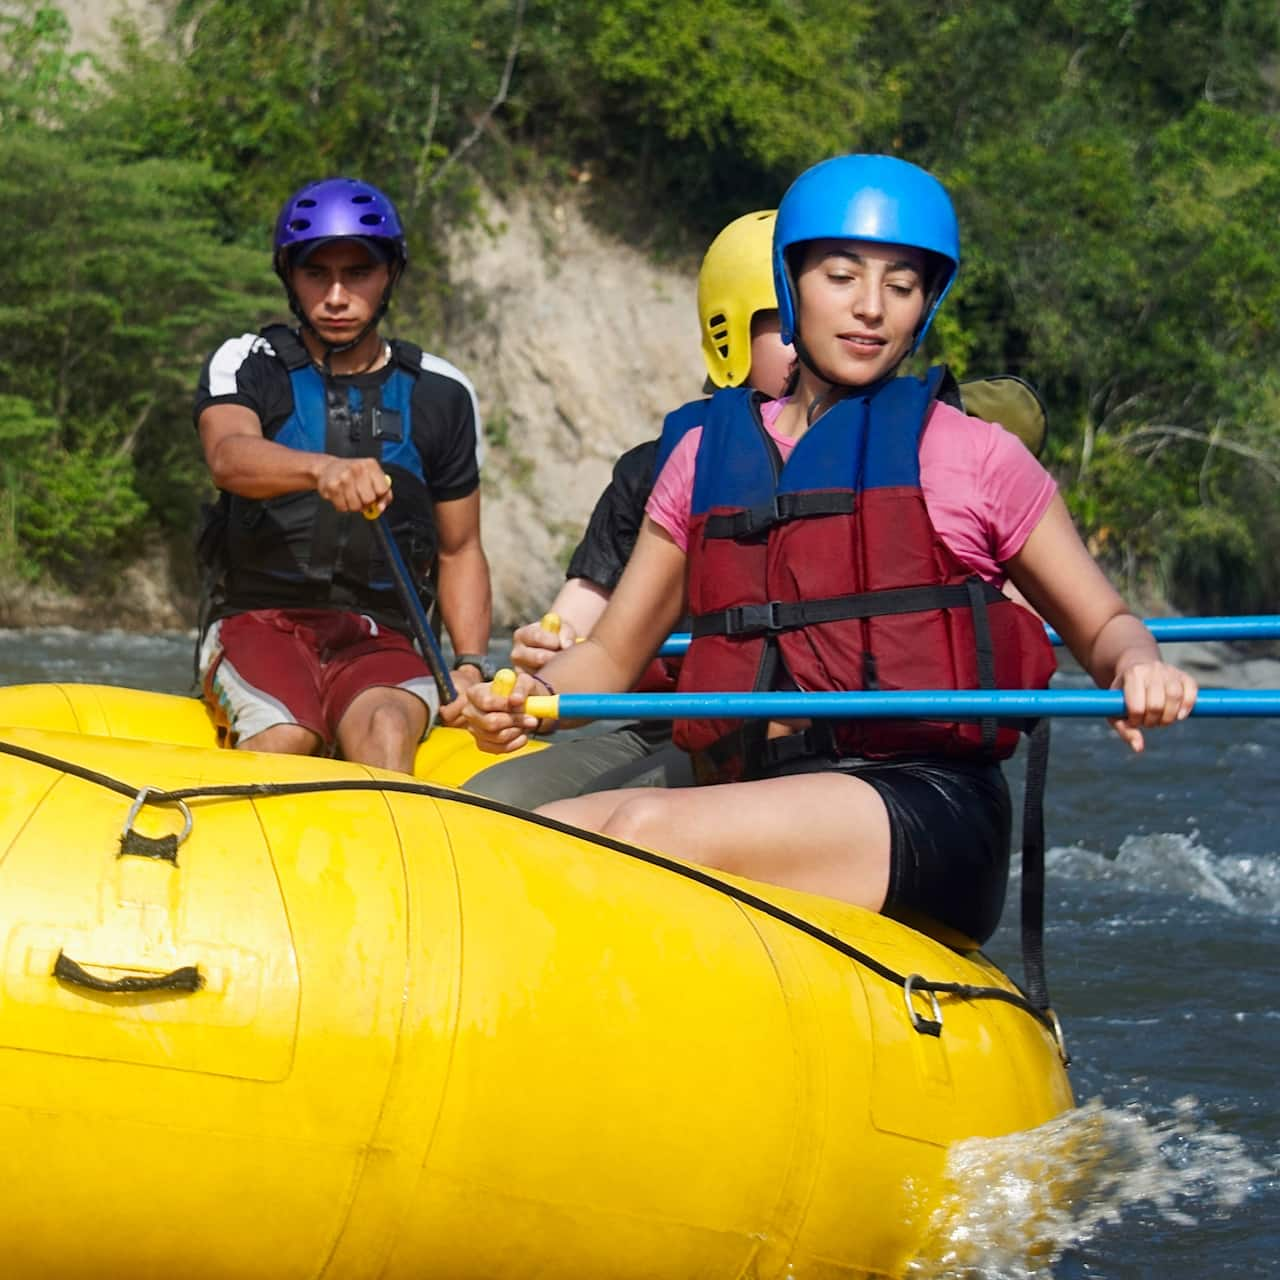 5 teenagers paddle in a whitewater raft down a river